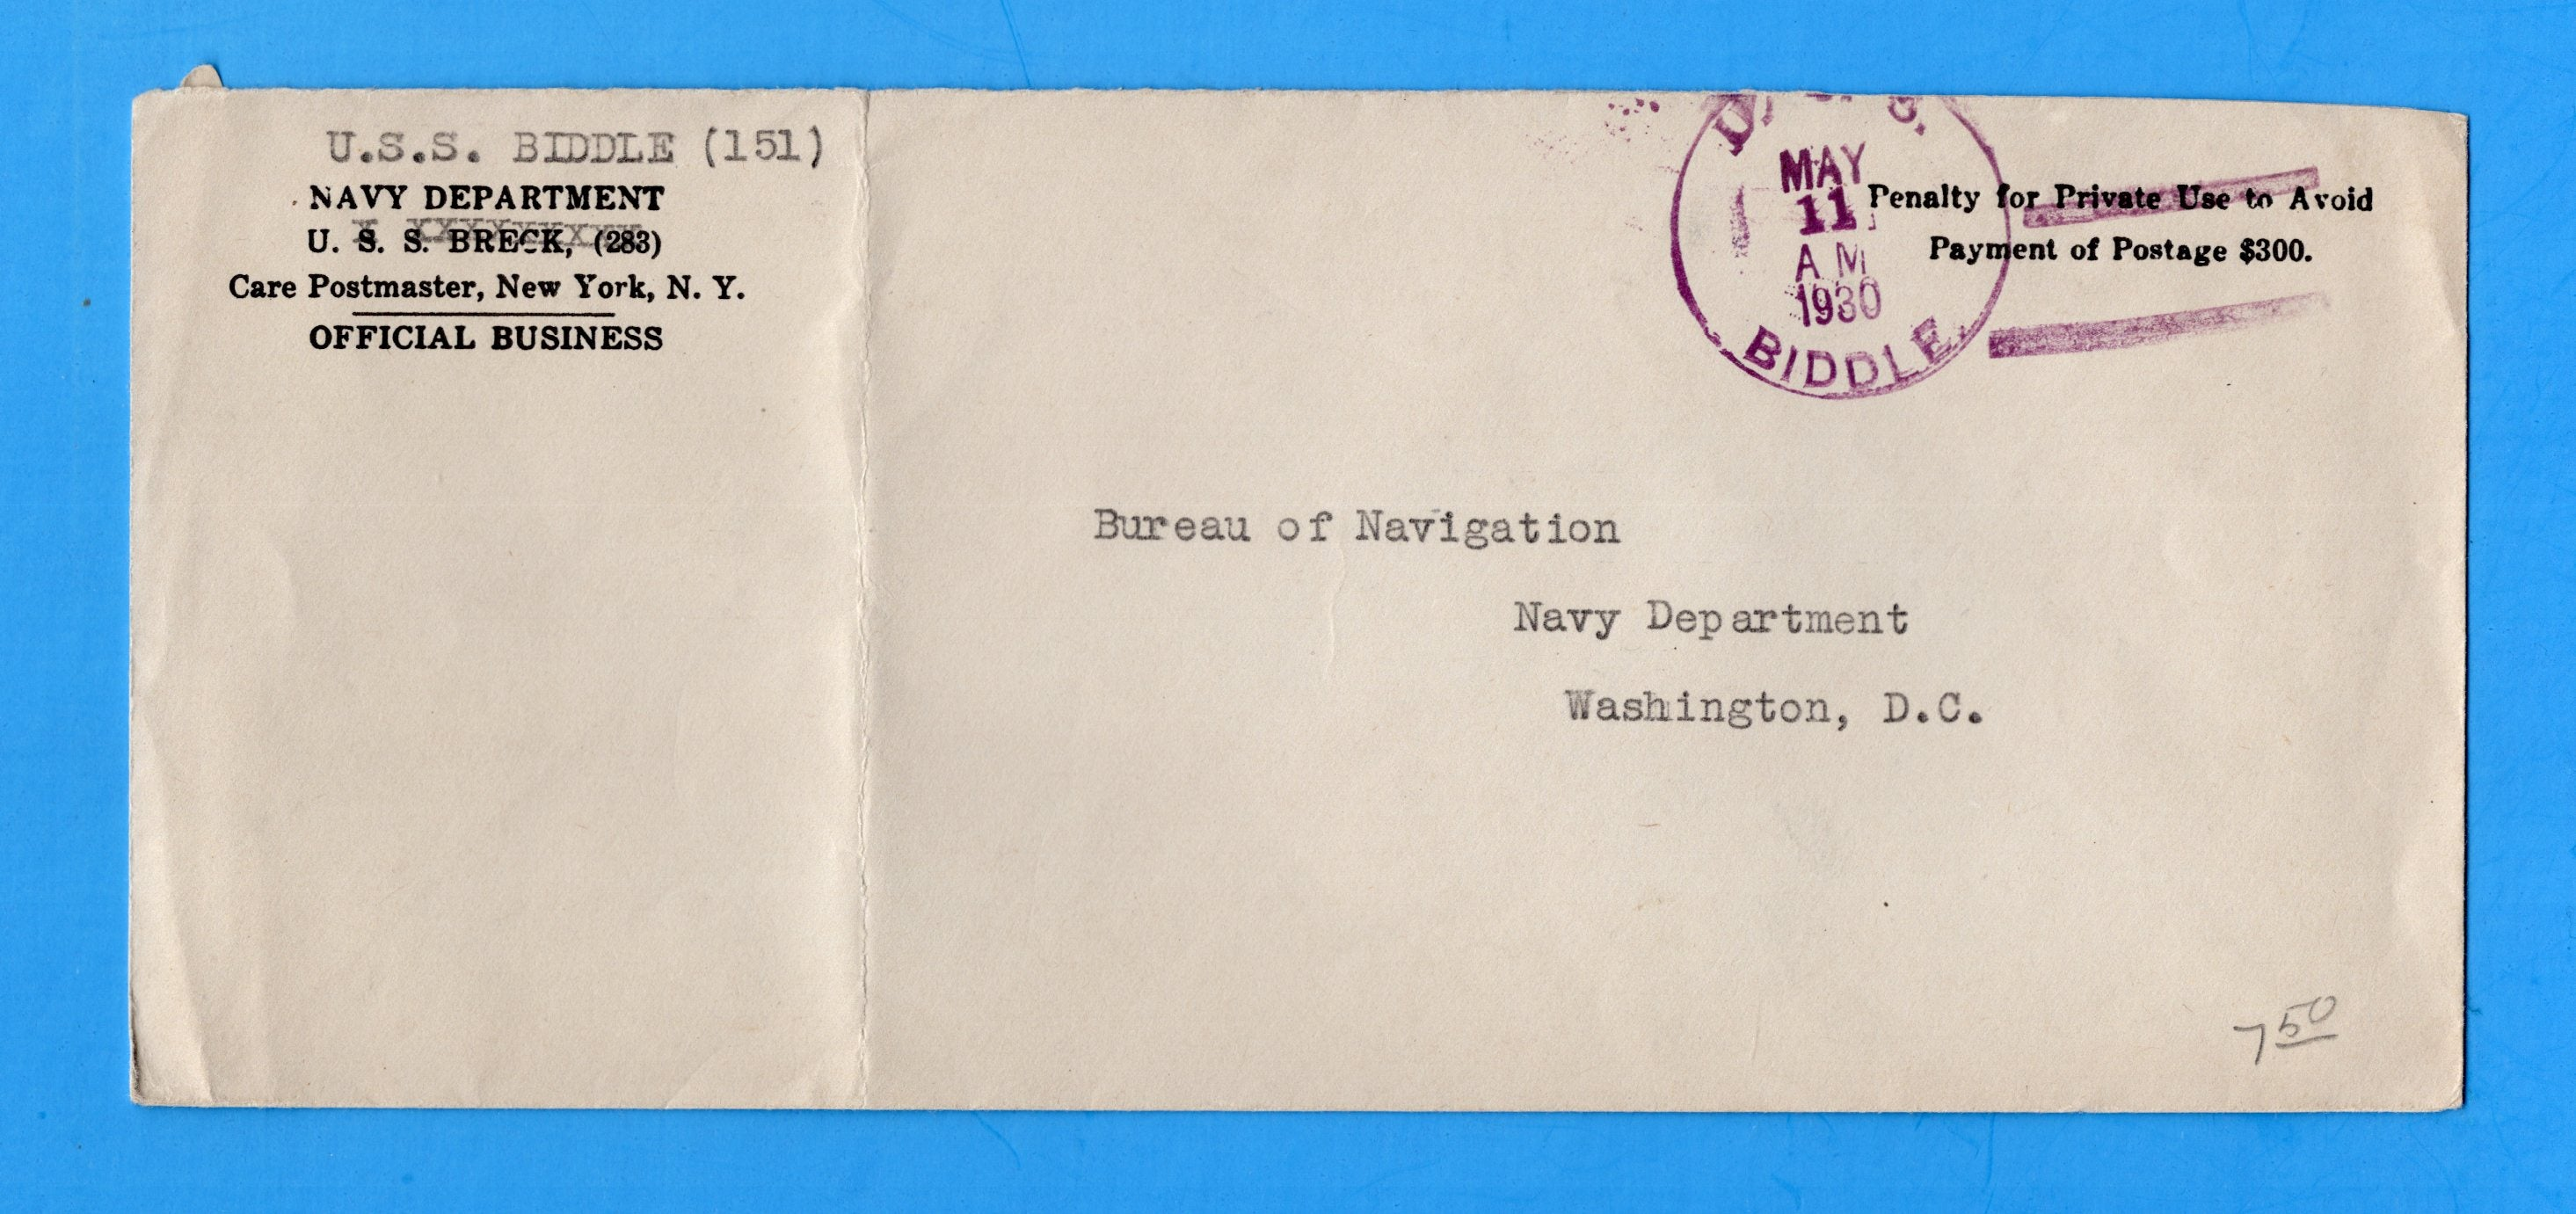 USS Biddle DD-151 Navy Department Official Mail May 11, 1930